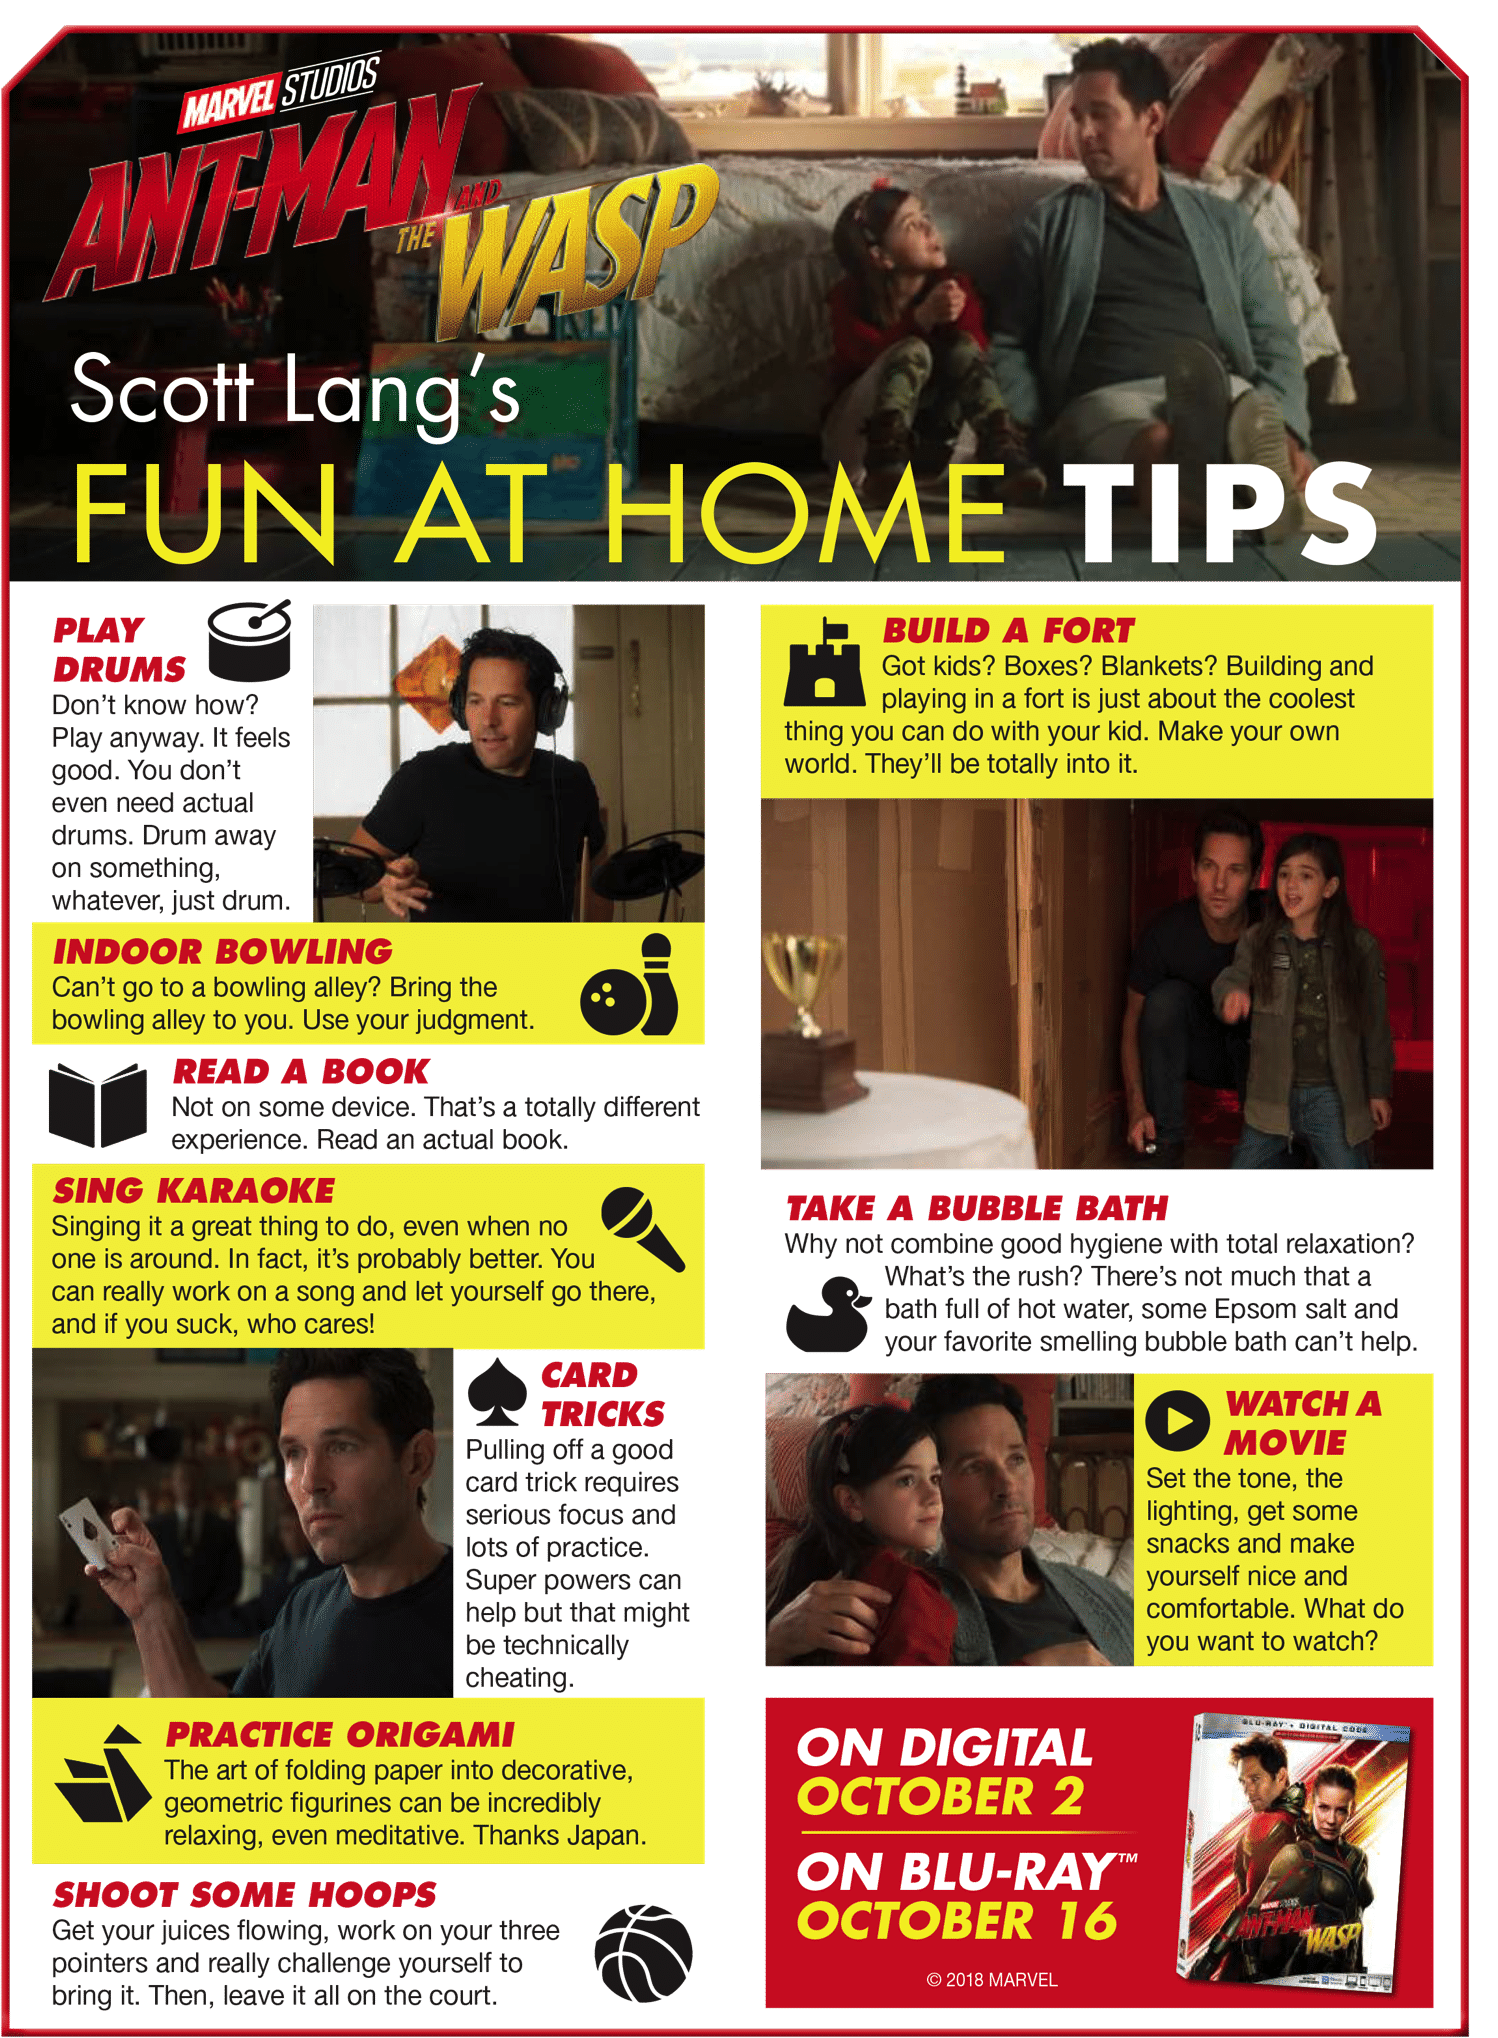 Ant man and the wasp things to do at home